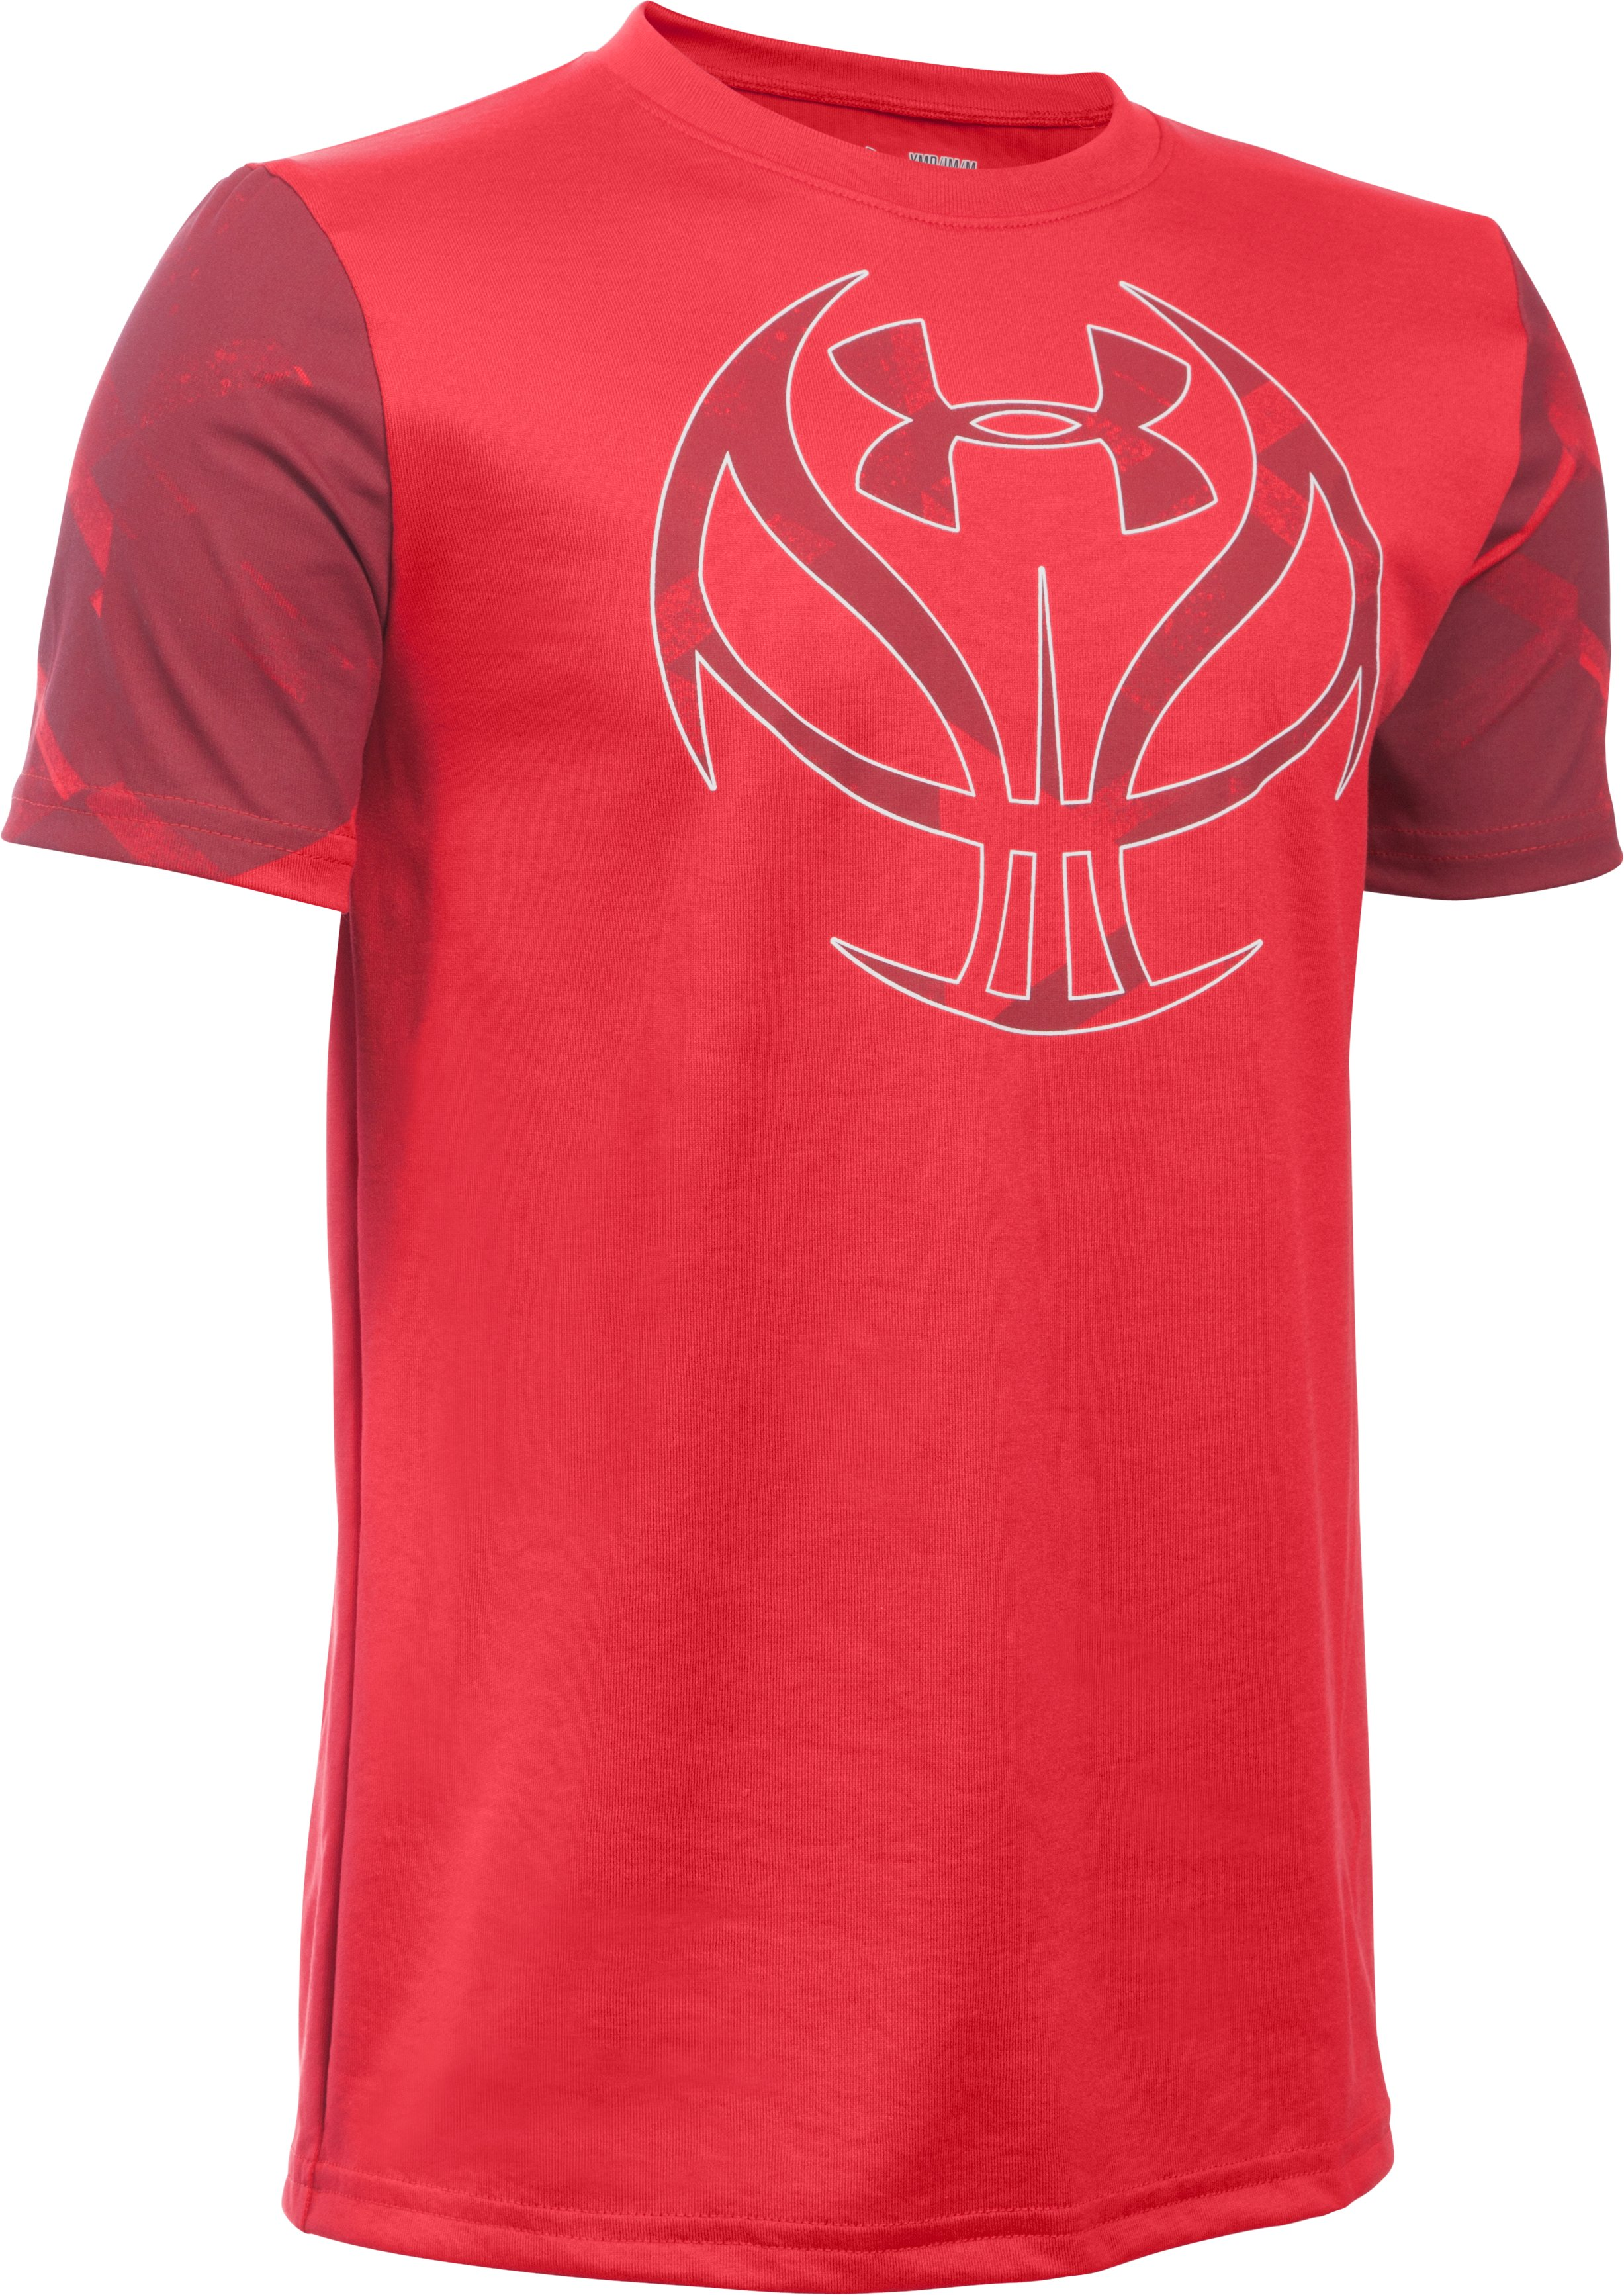 Boys' UA Basketball Logo Printed T-Shirt, Red, zoomed image